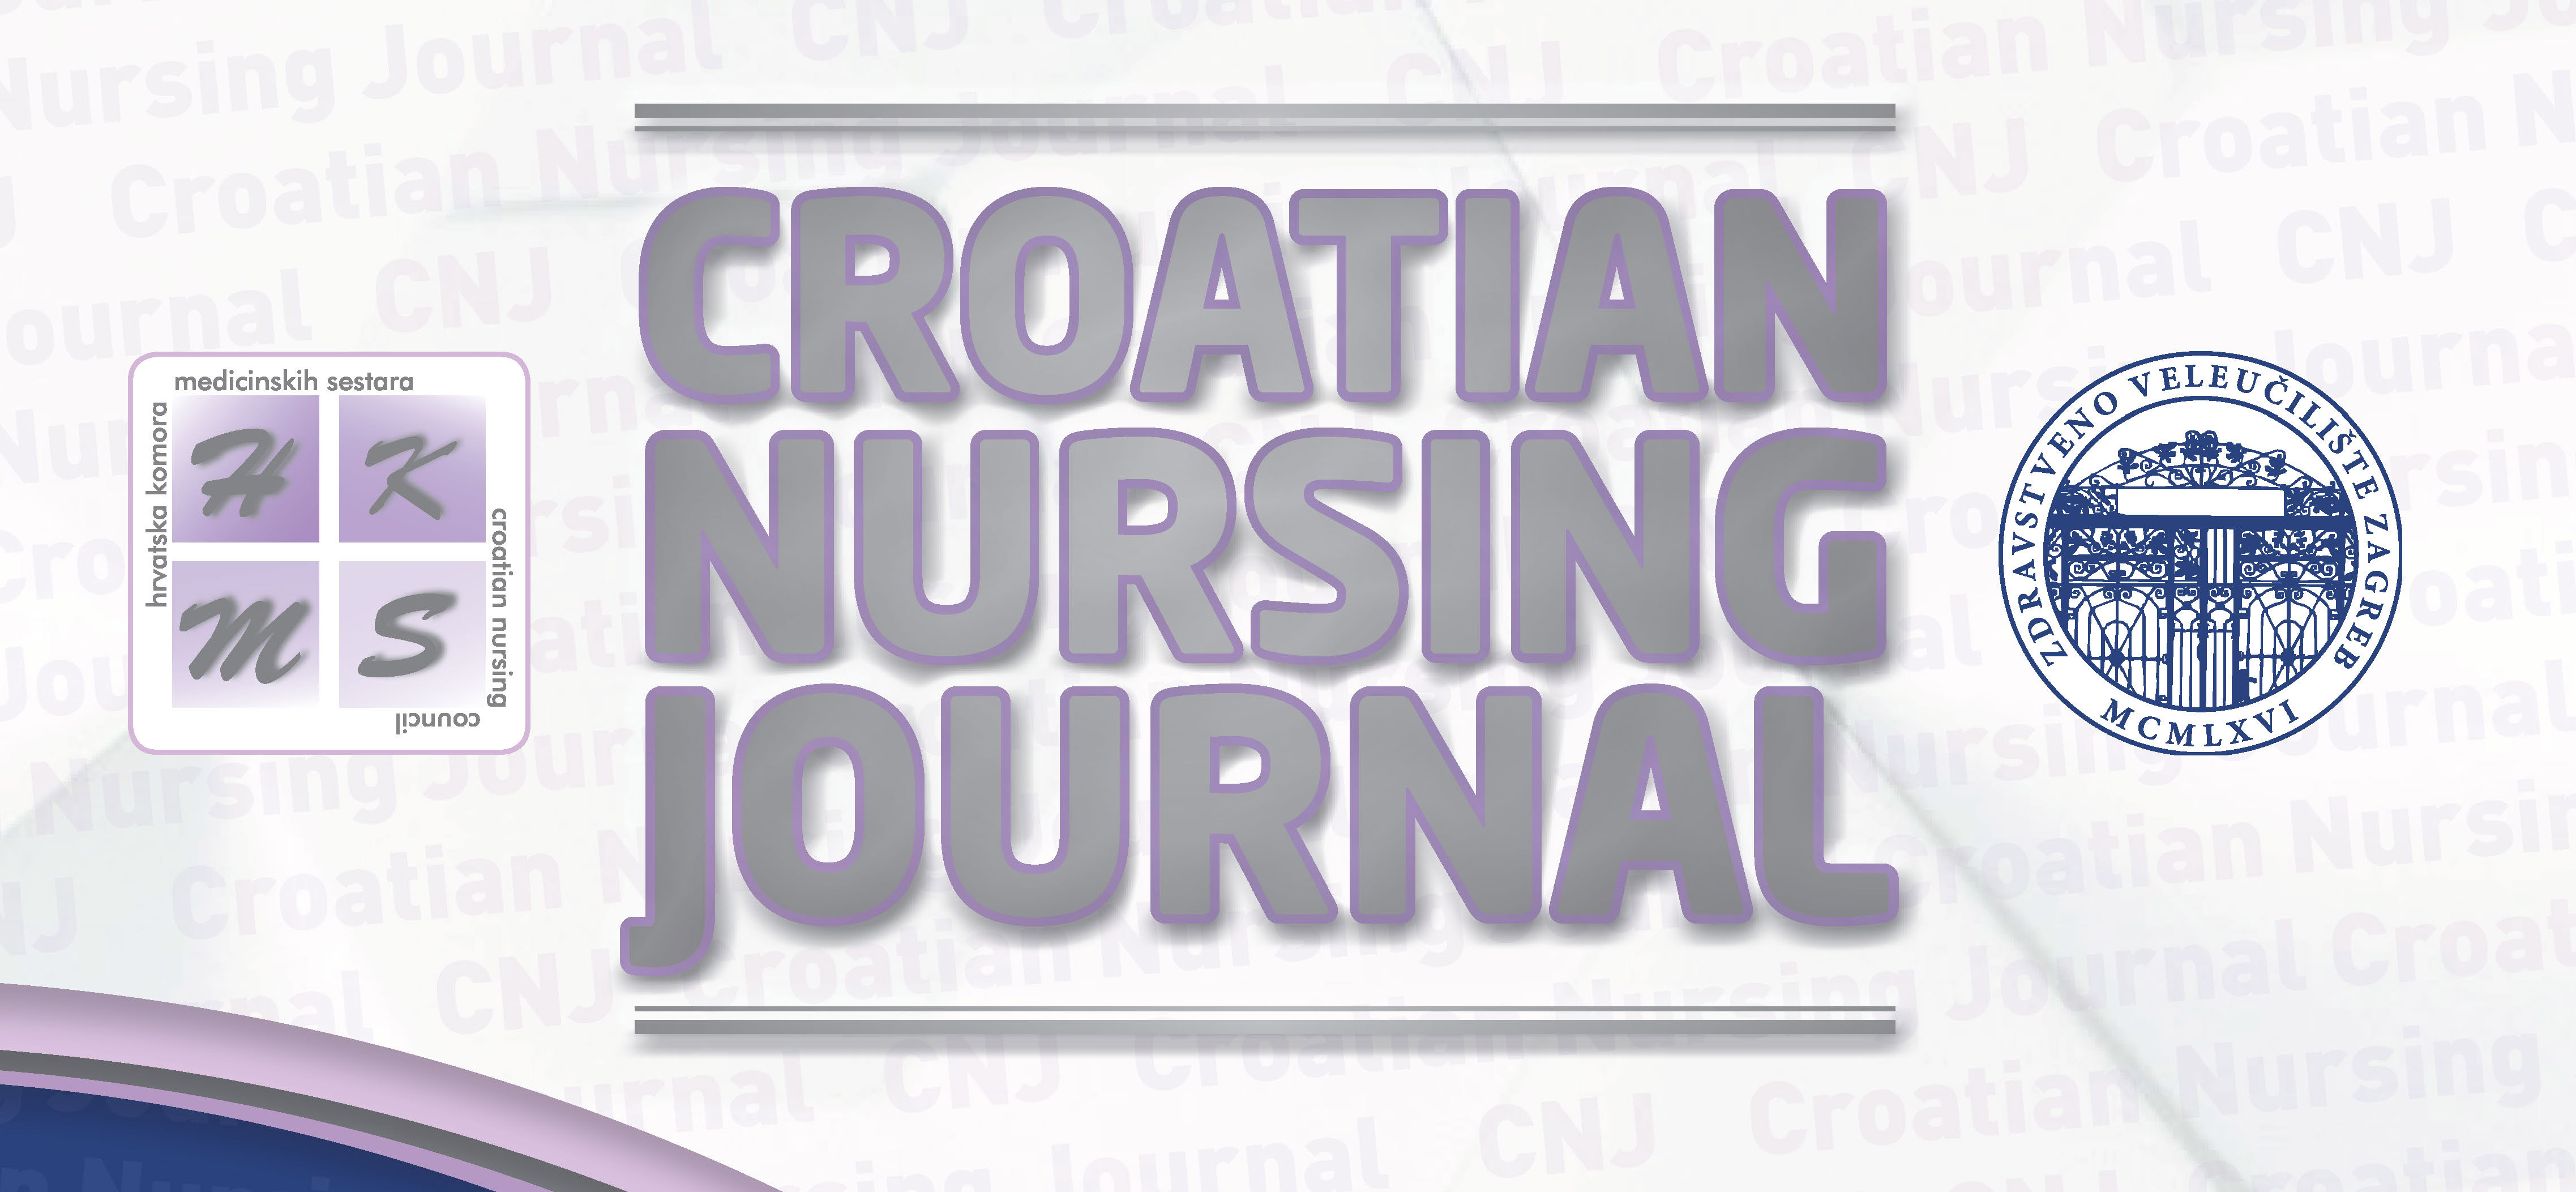 Croatian Nursing Journal